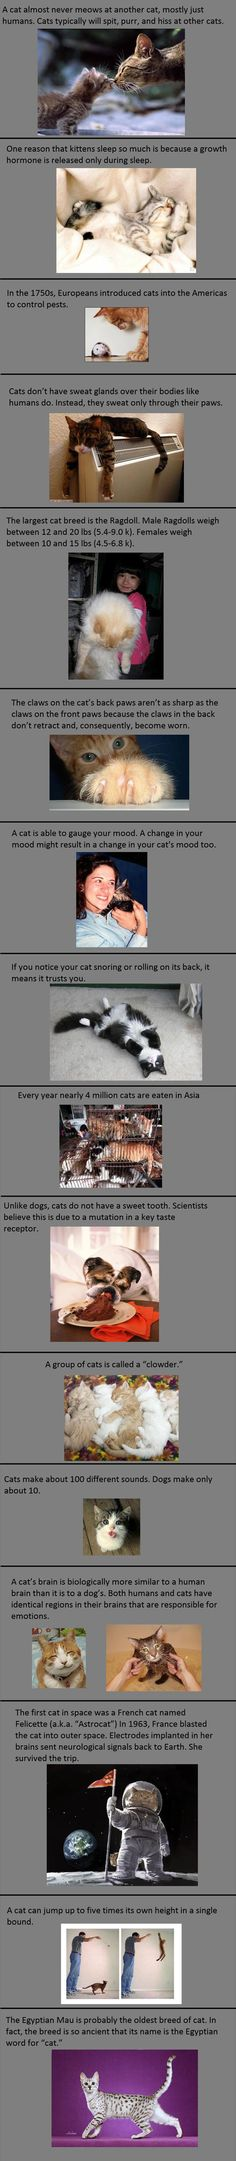 Interesting cat facts...